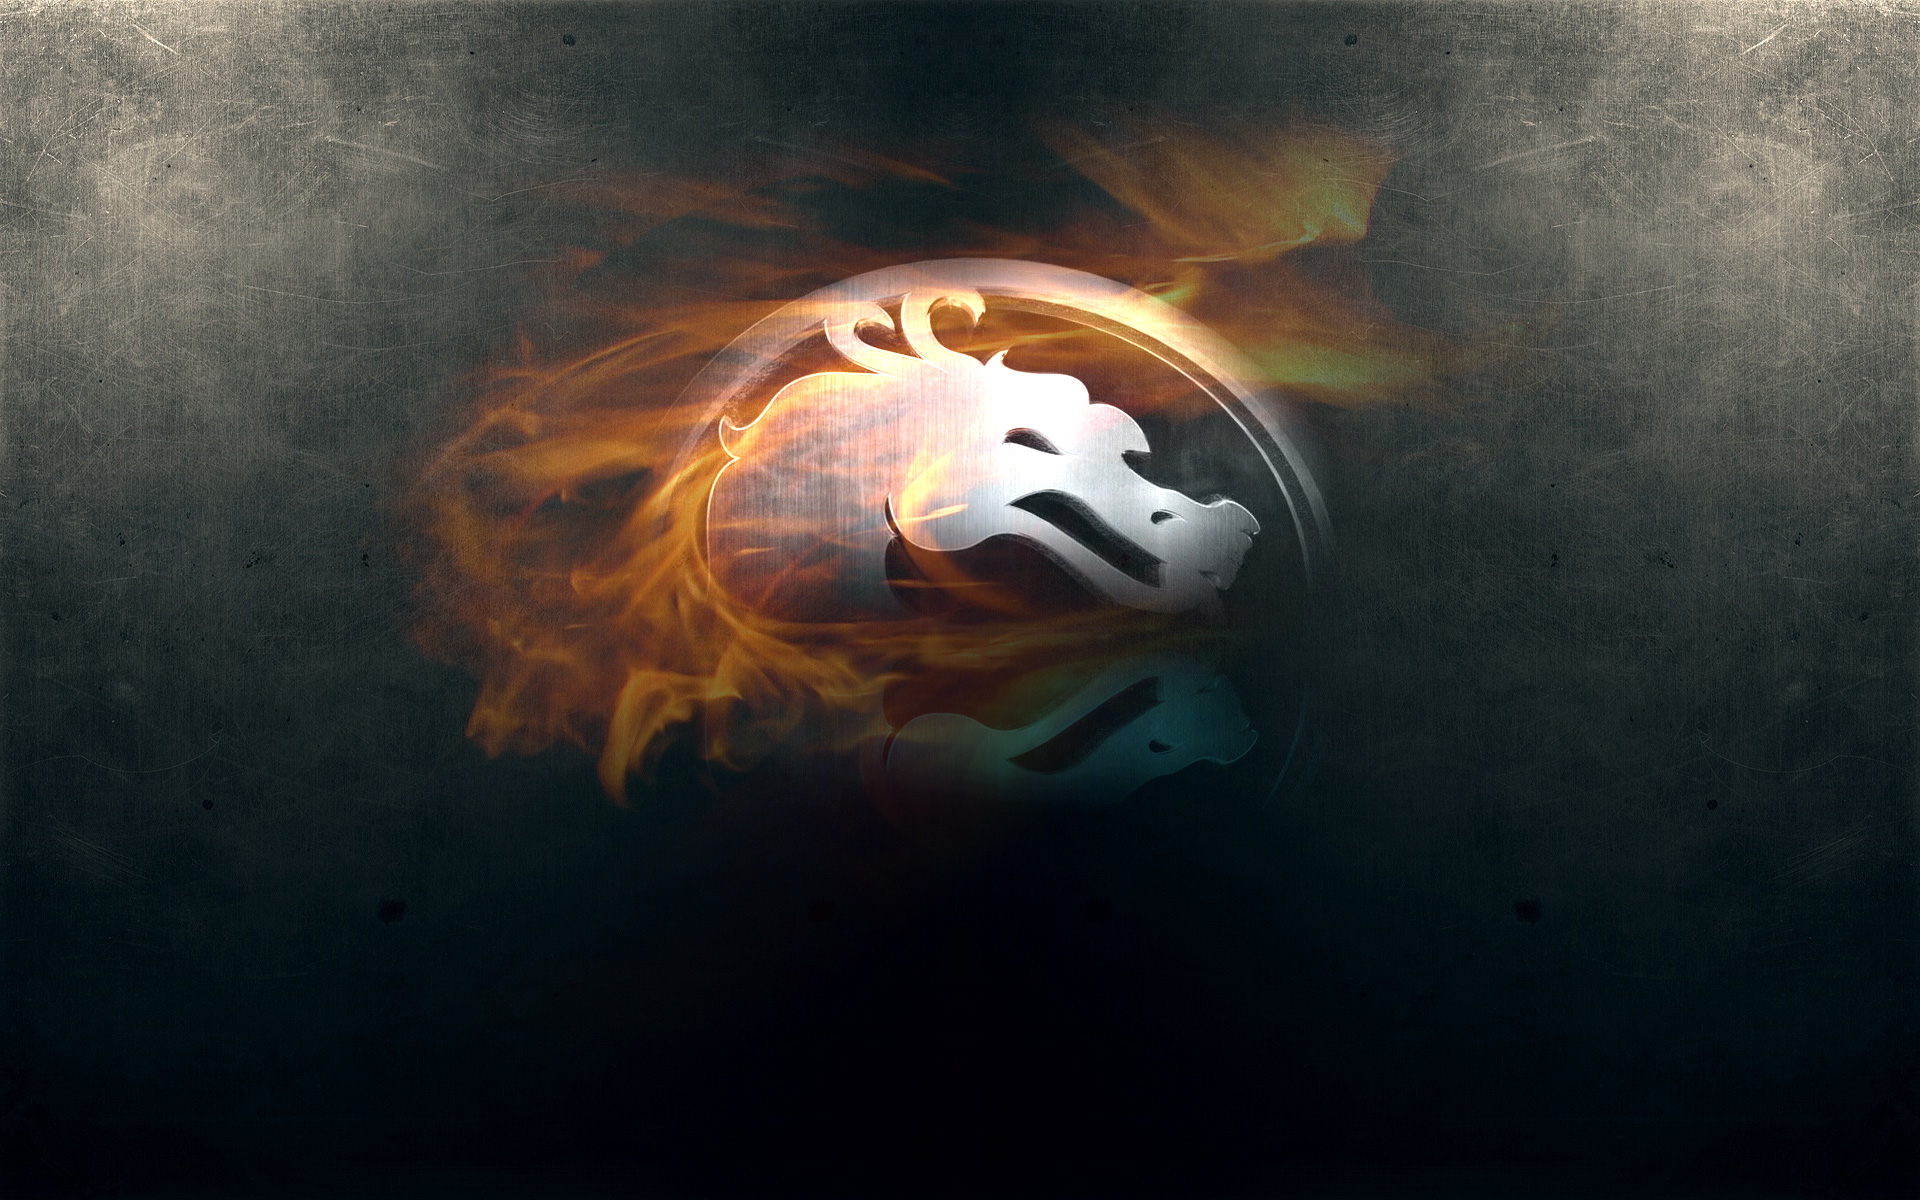 Download Mortal Kombat Wallpaper Games HD pictures in high definition 1920x1200